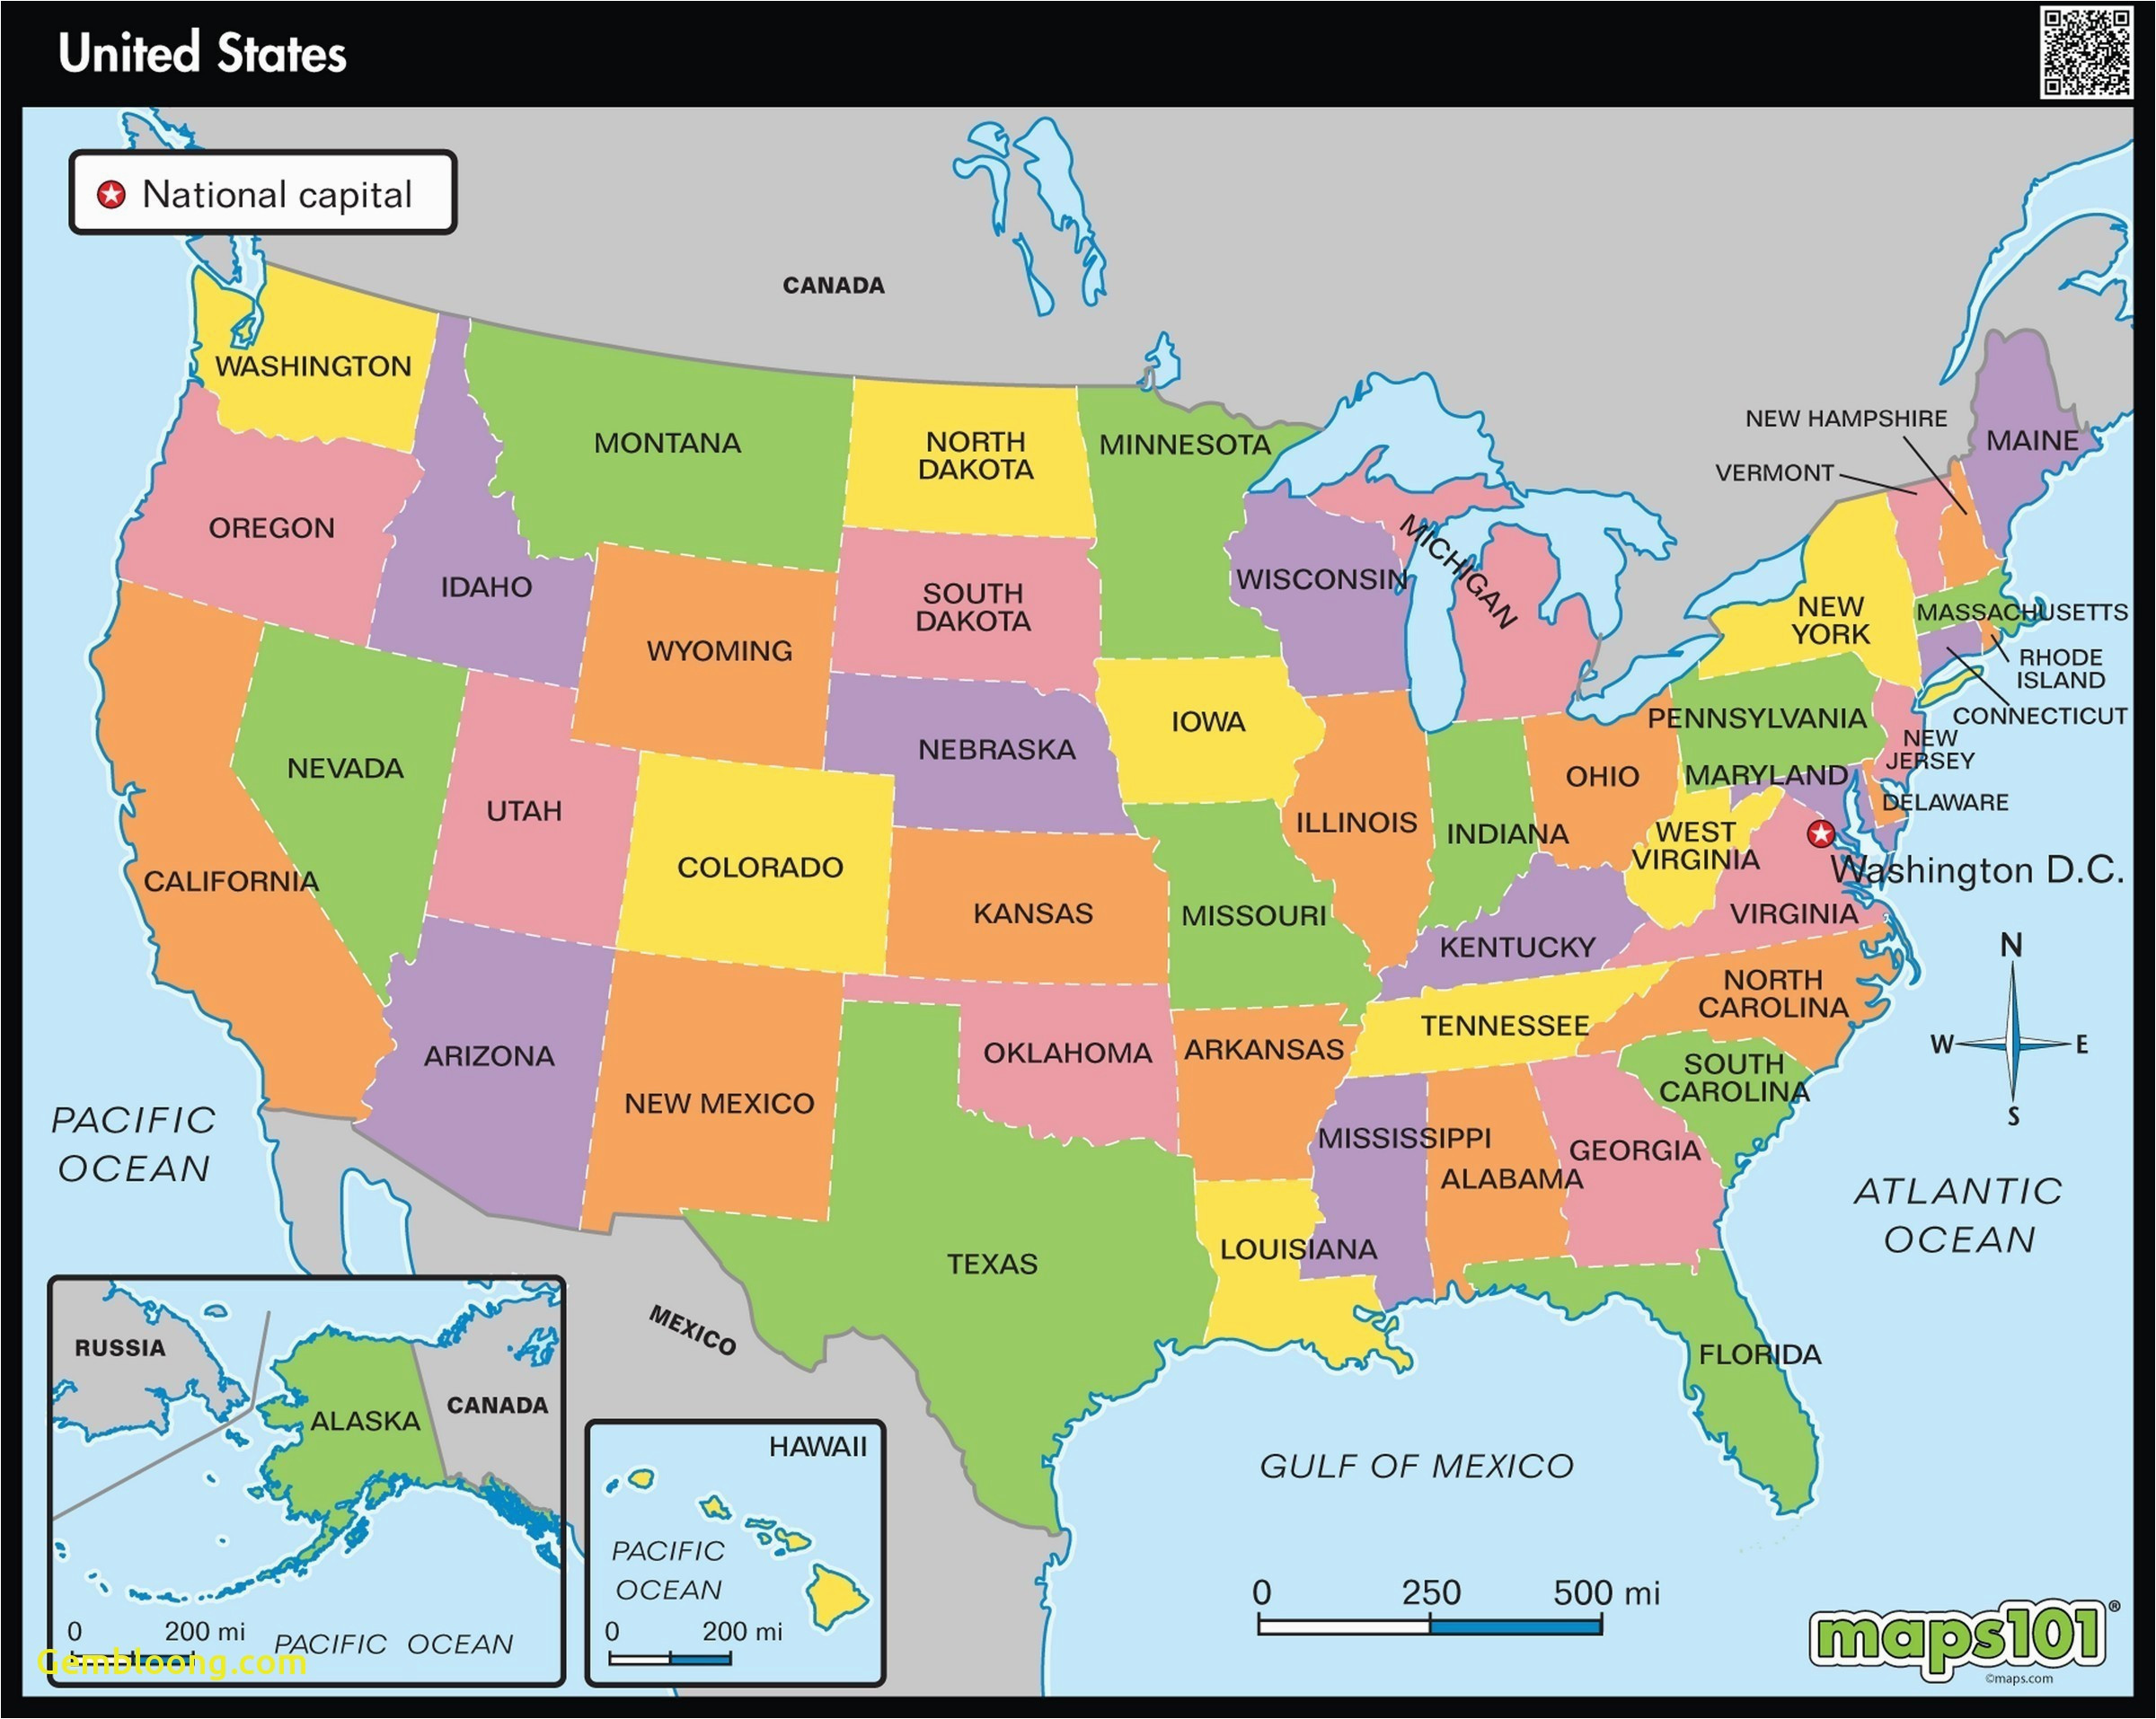 Michigan Zipcode Map United States D Claration Of Independence ... on independence ohio map, tocqueville 1831 u s states map, independence ca, usa map, independence us flag, city of independence ia map, fort independence location on map,